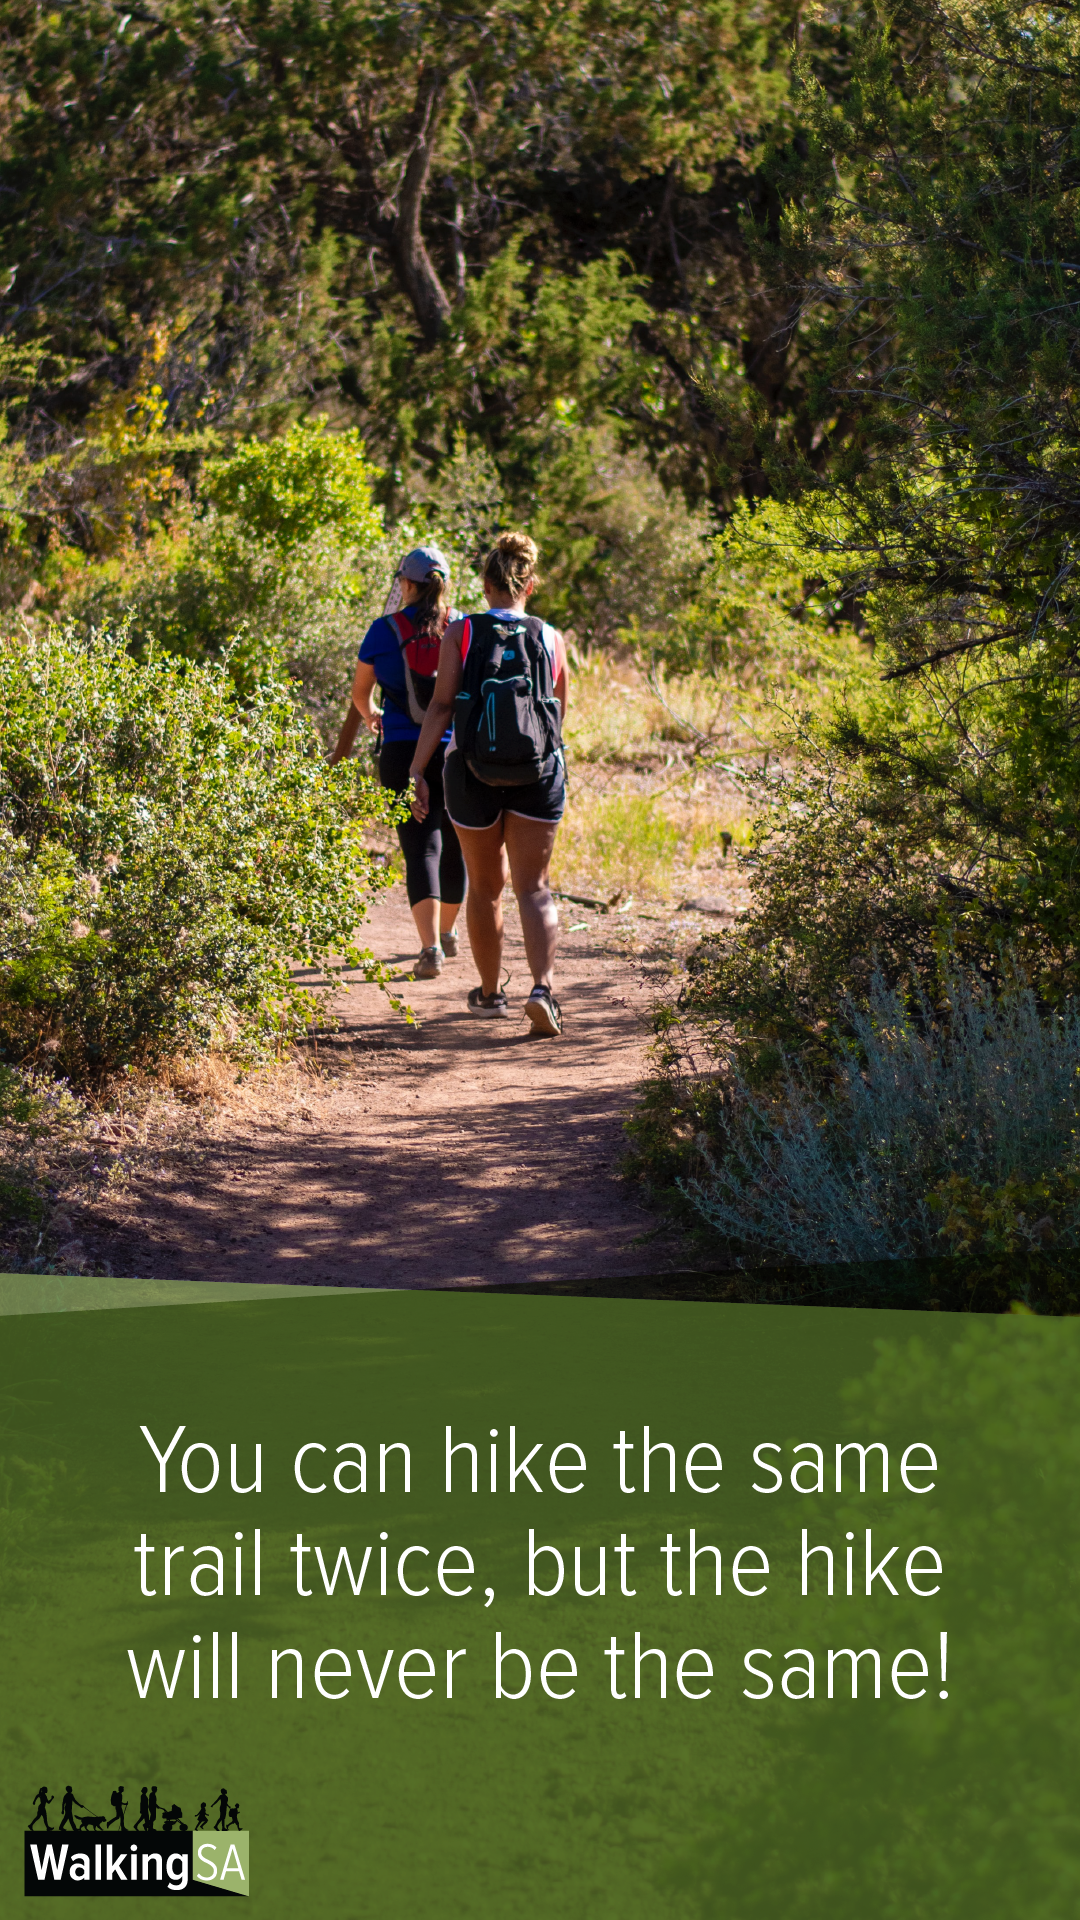 social media tile Square 1080px x 1900px: You can hike the same trail twice, but the hike will never be the same.